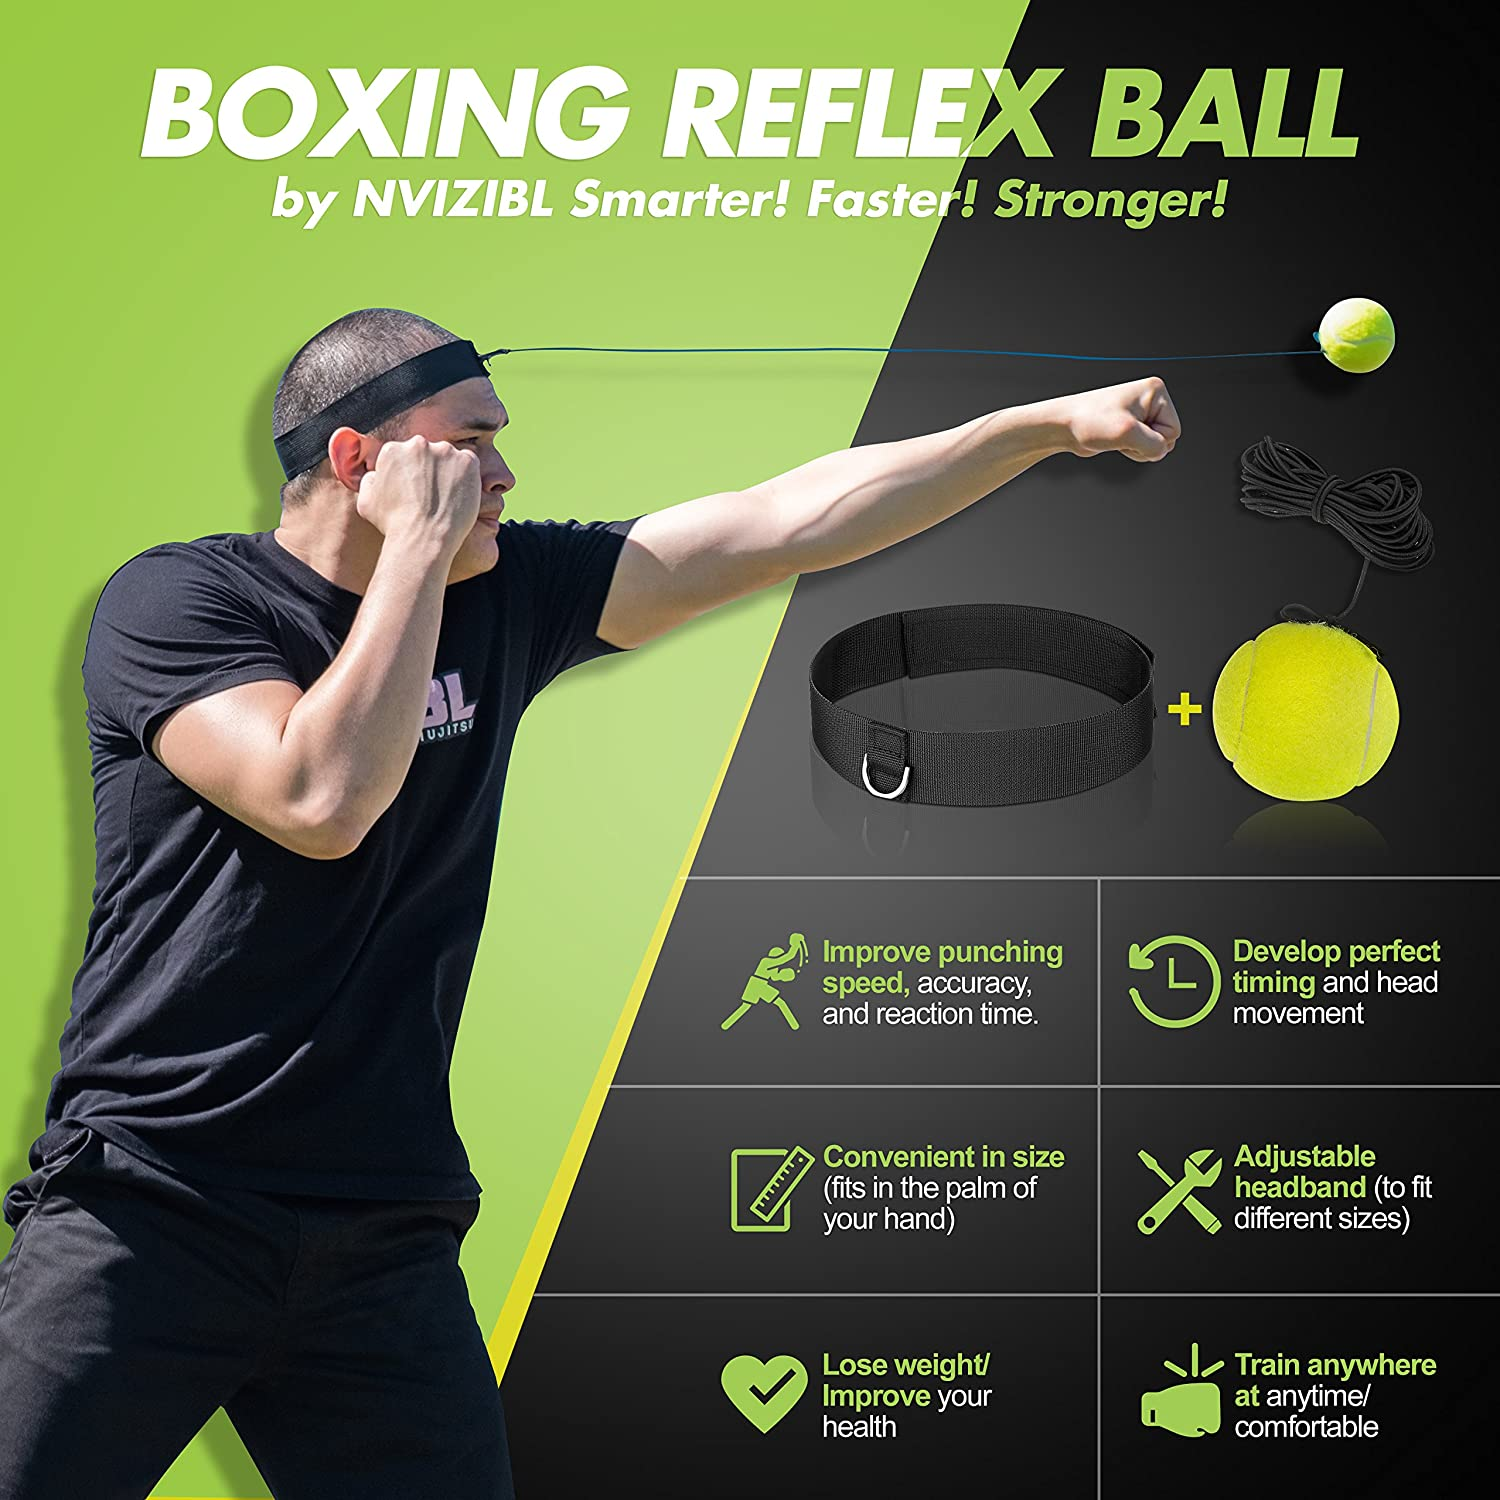 Kids Fight Ball Lose Weight and Improve Health Reflex Fight Ball with Headband for Boxing and MMA Nvizibl Fight Ball Reflex Speed Training for Punching Reflex